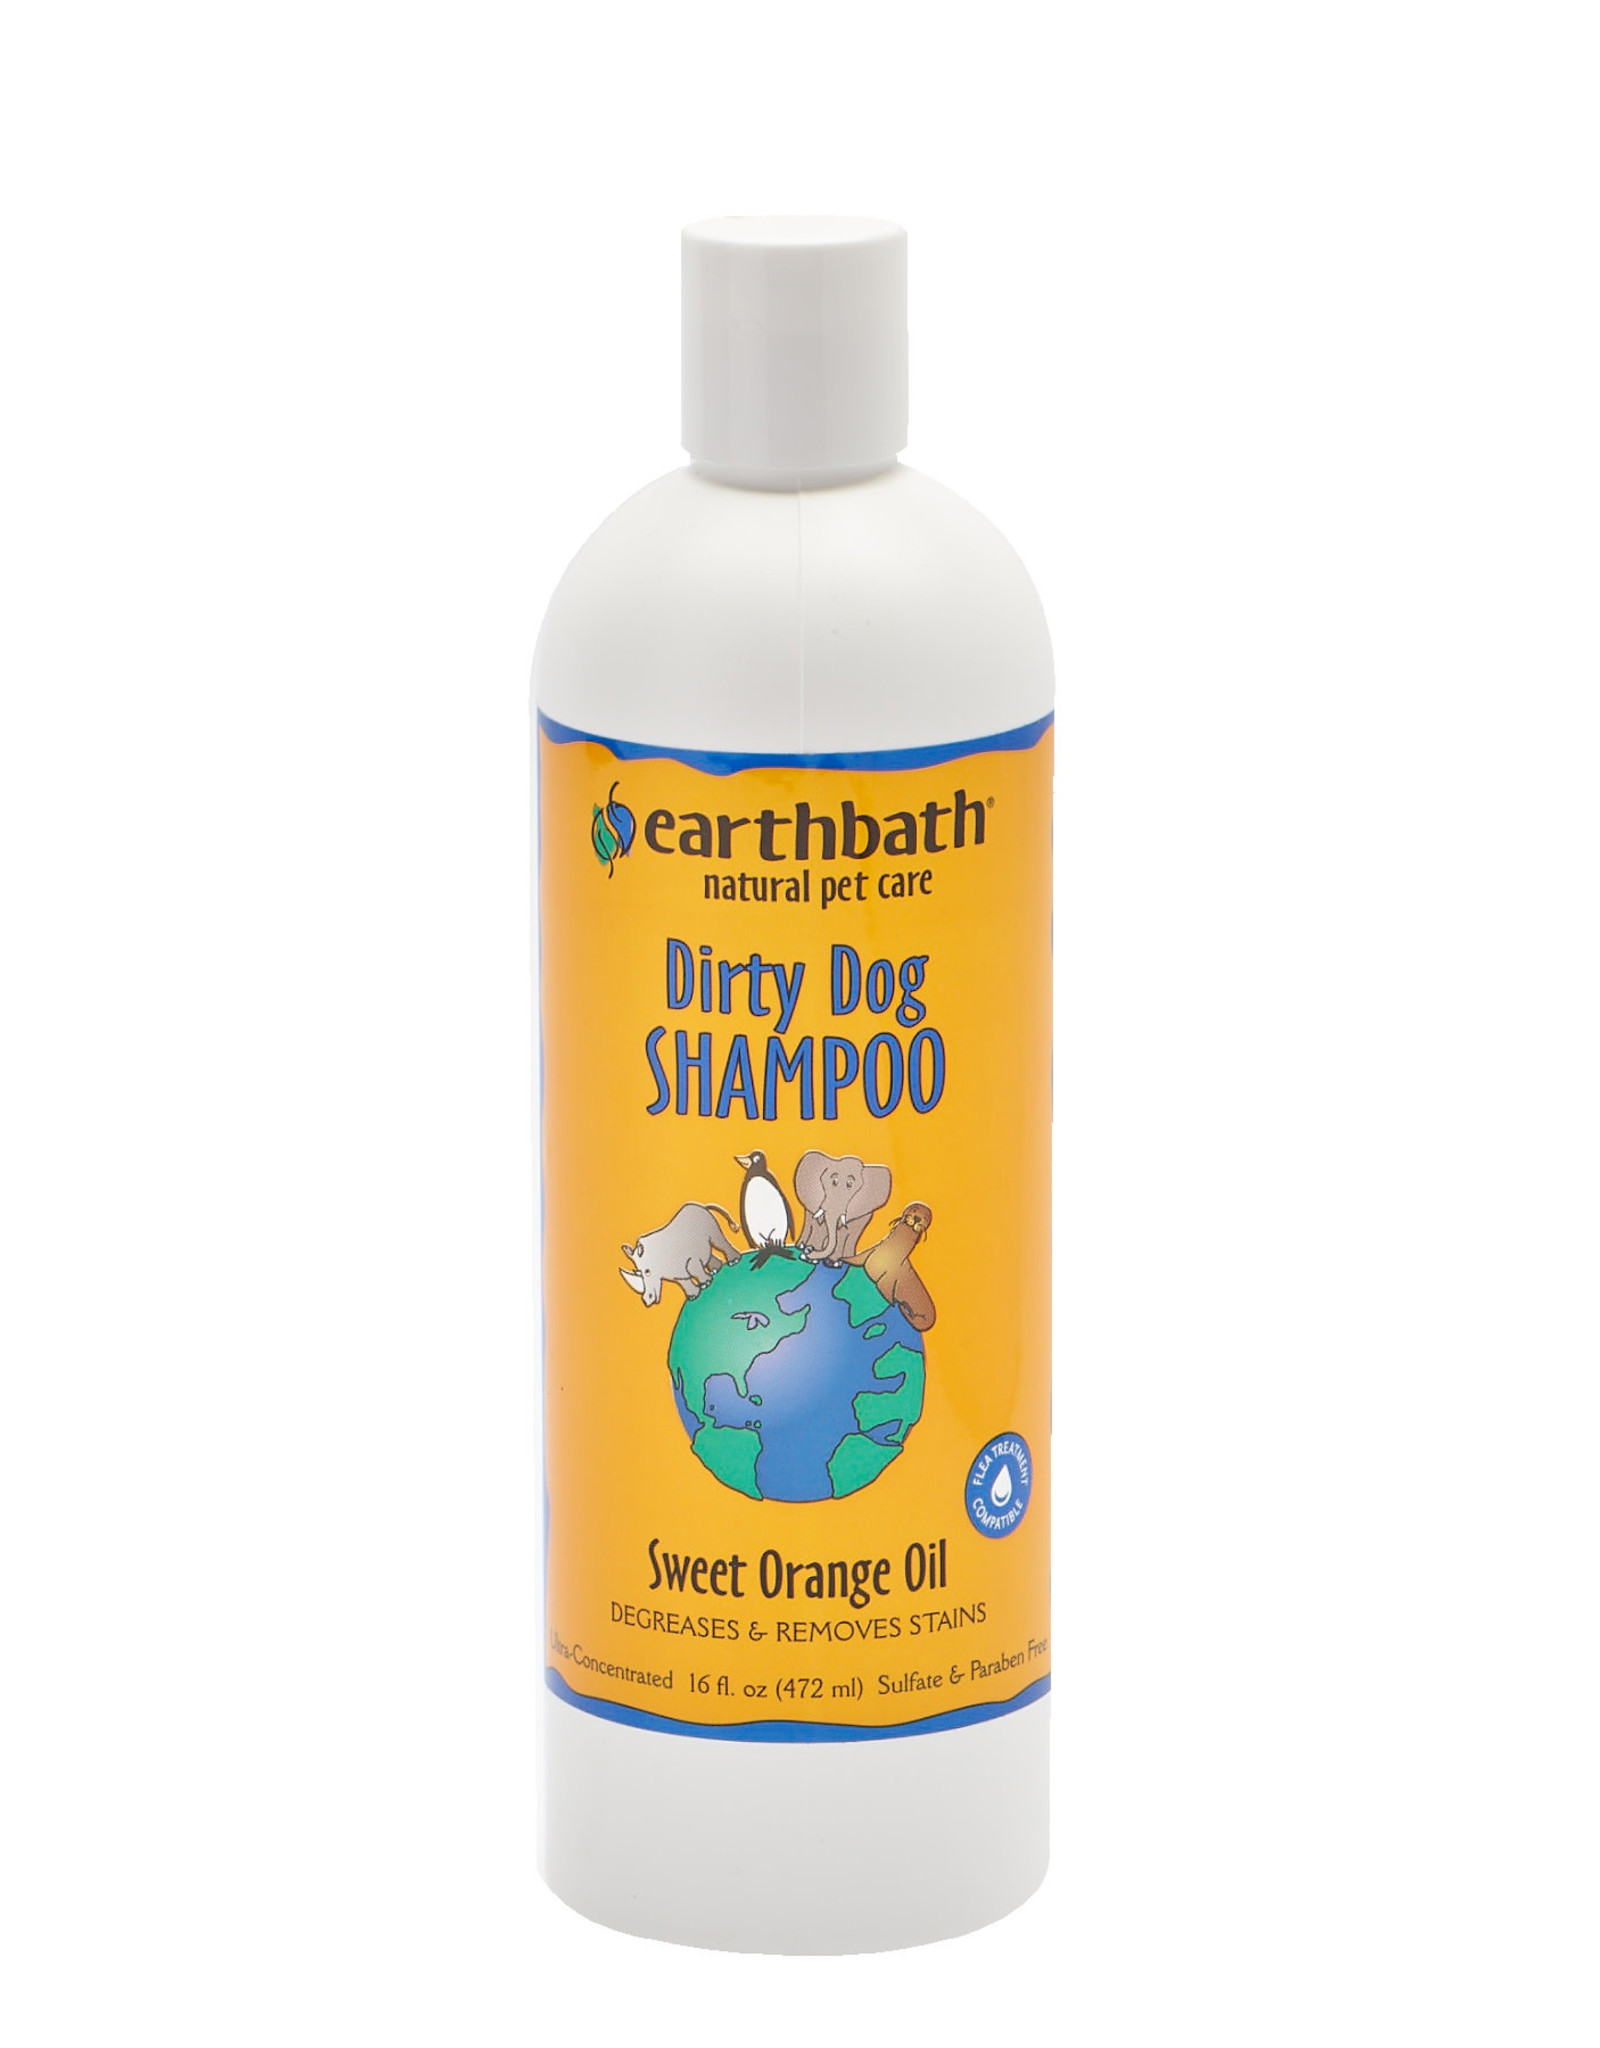 Earthbath Earthbath Shampoo: Orange Oil, 16oz